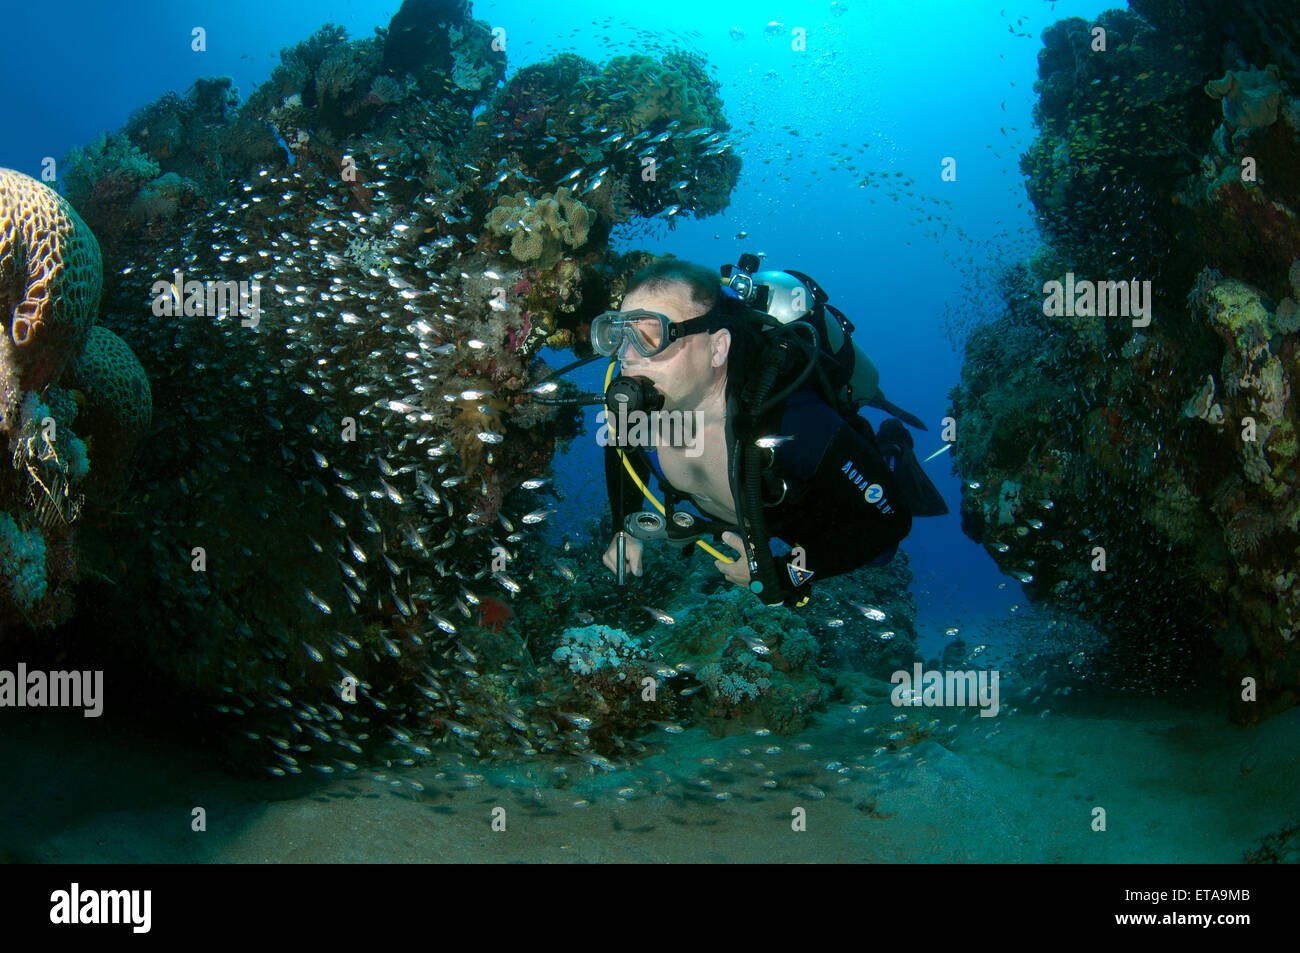 School of Silver Sweeper, Silver Glassy Sweepe, Glassfish, Pigmy Sweeper, Ransonnet's bullseye, Rosy sweep, - Stock Image